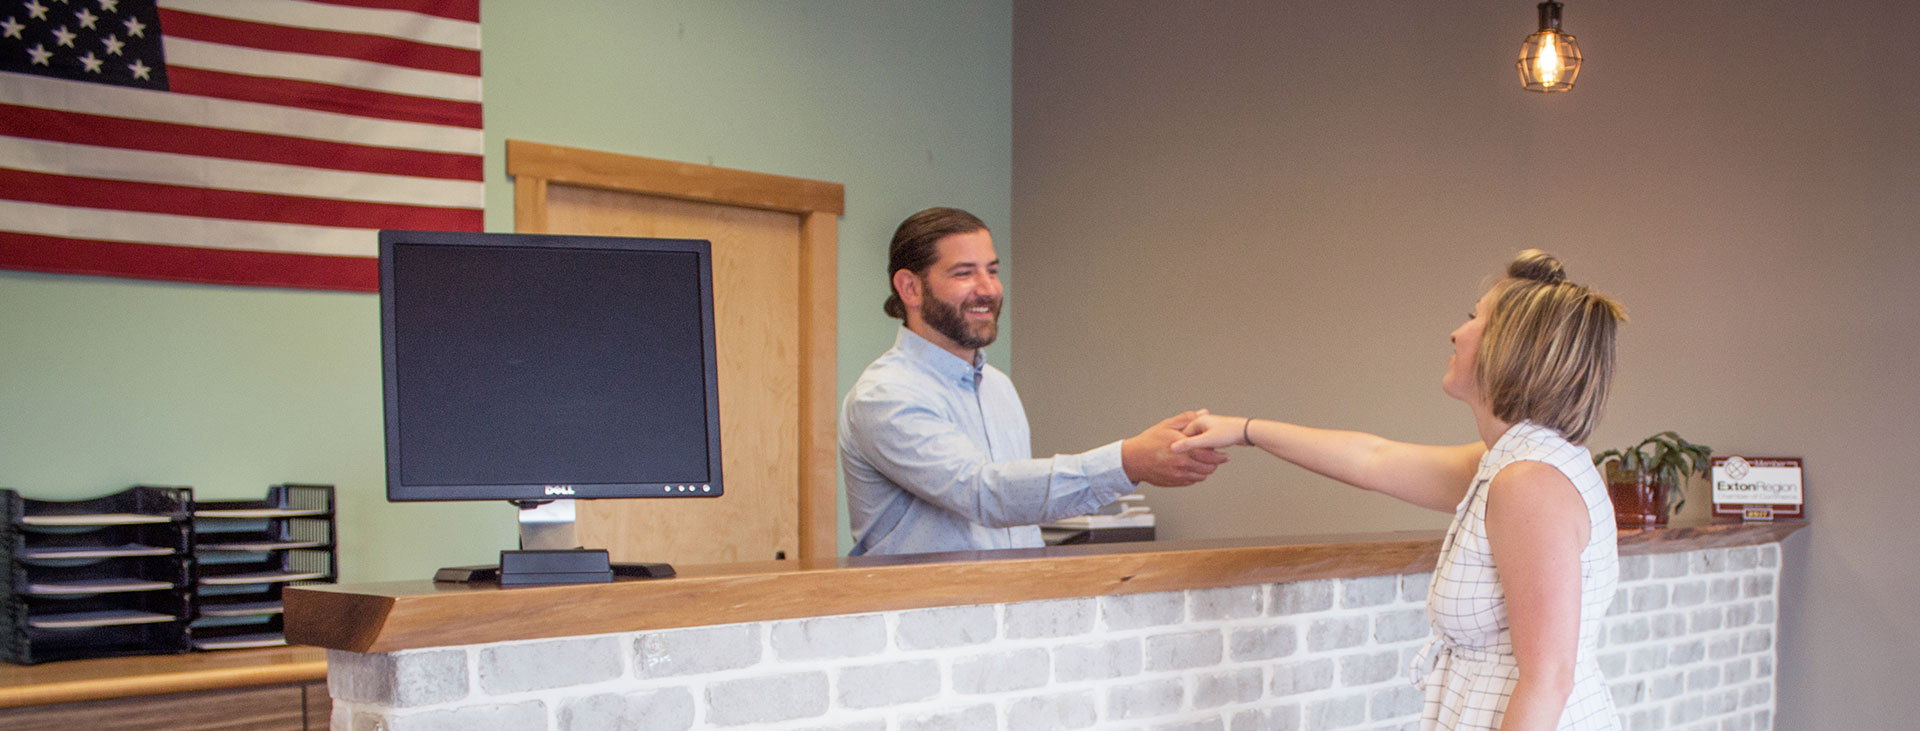 What to expect on your first visit to Impact Chiropractic, Exton chiropractor